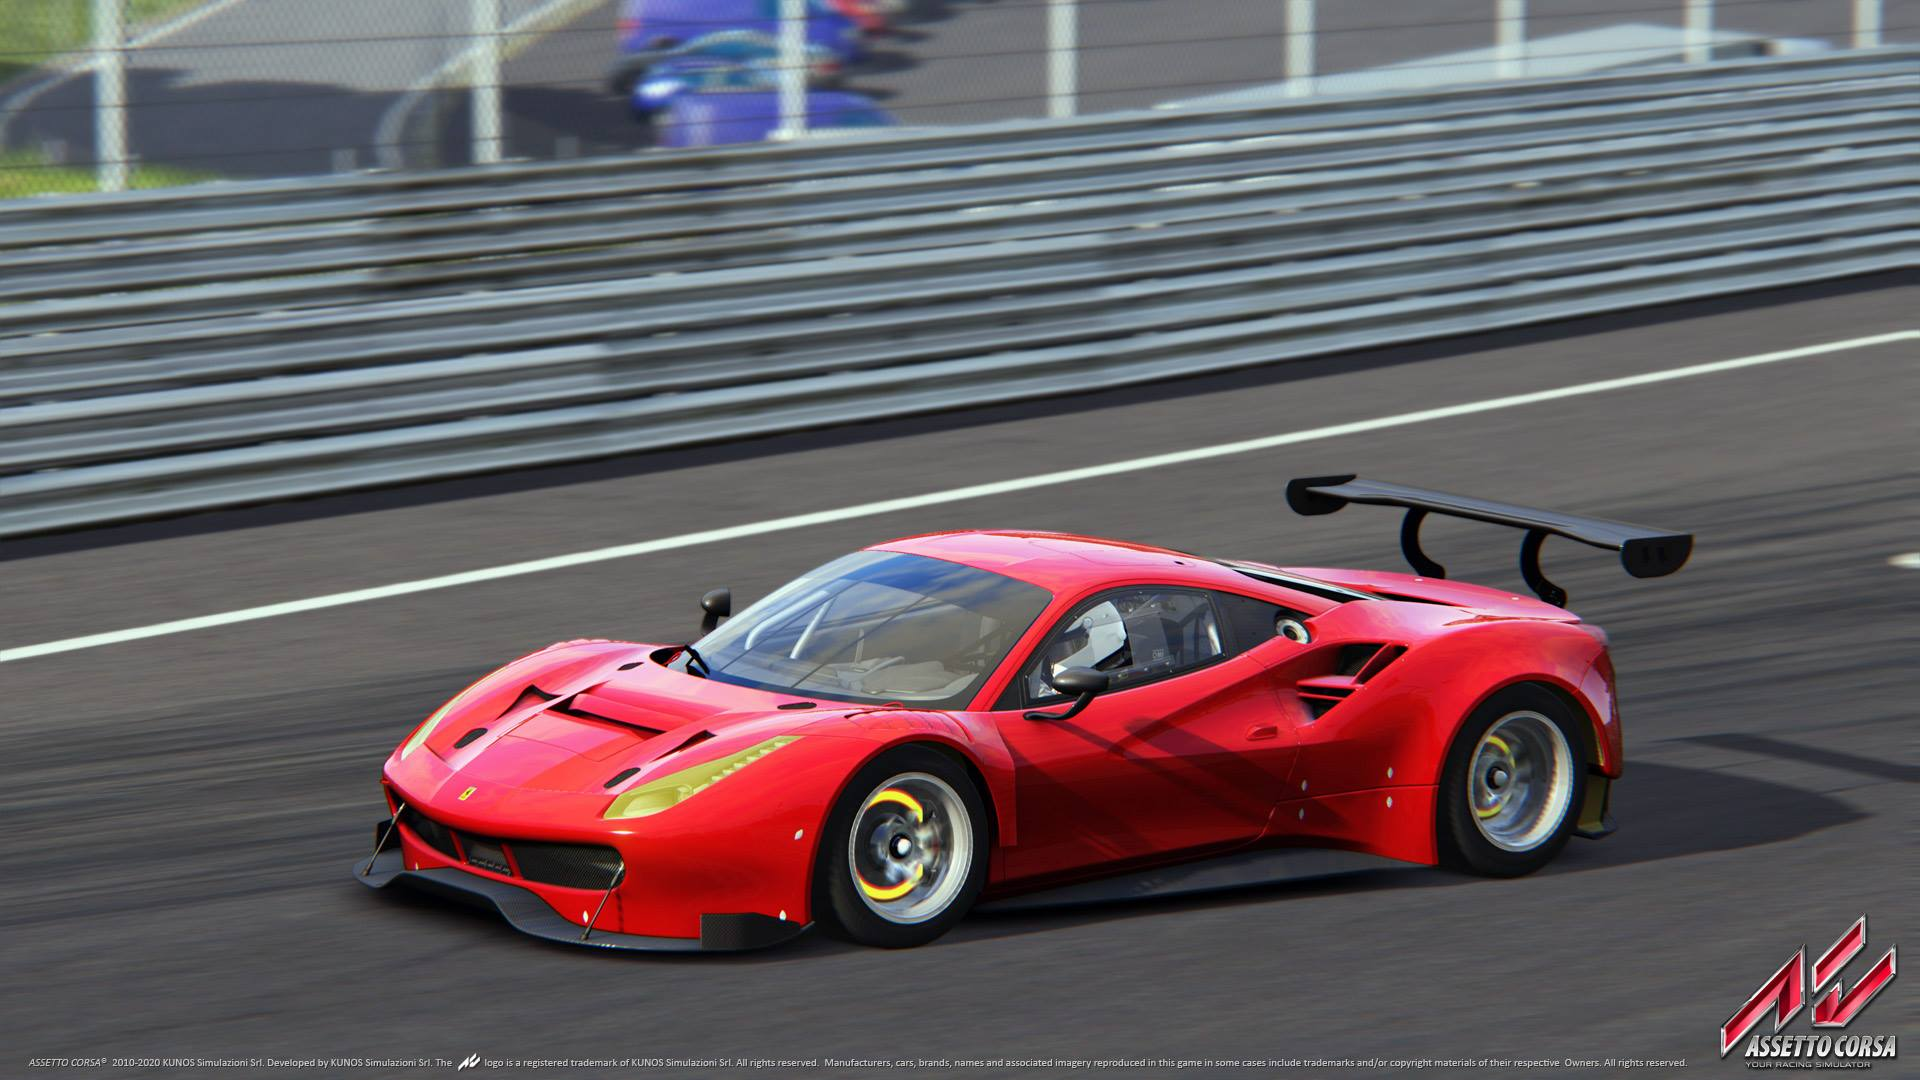 Assetto Corsa For Consoles Page 24